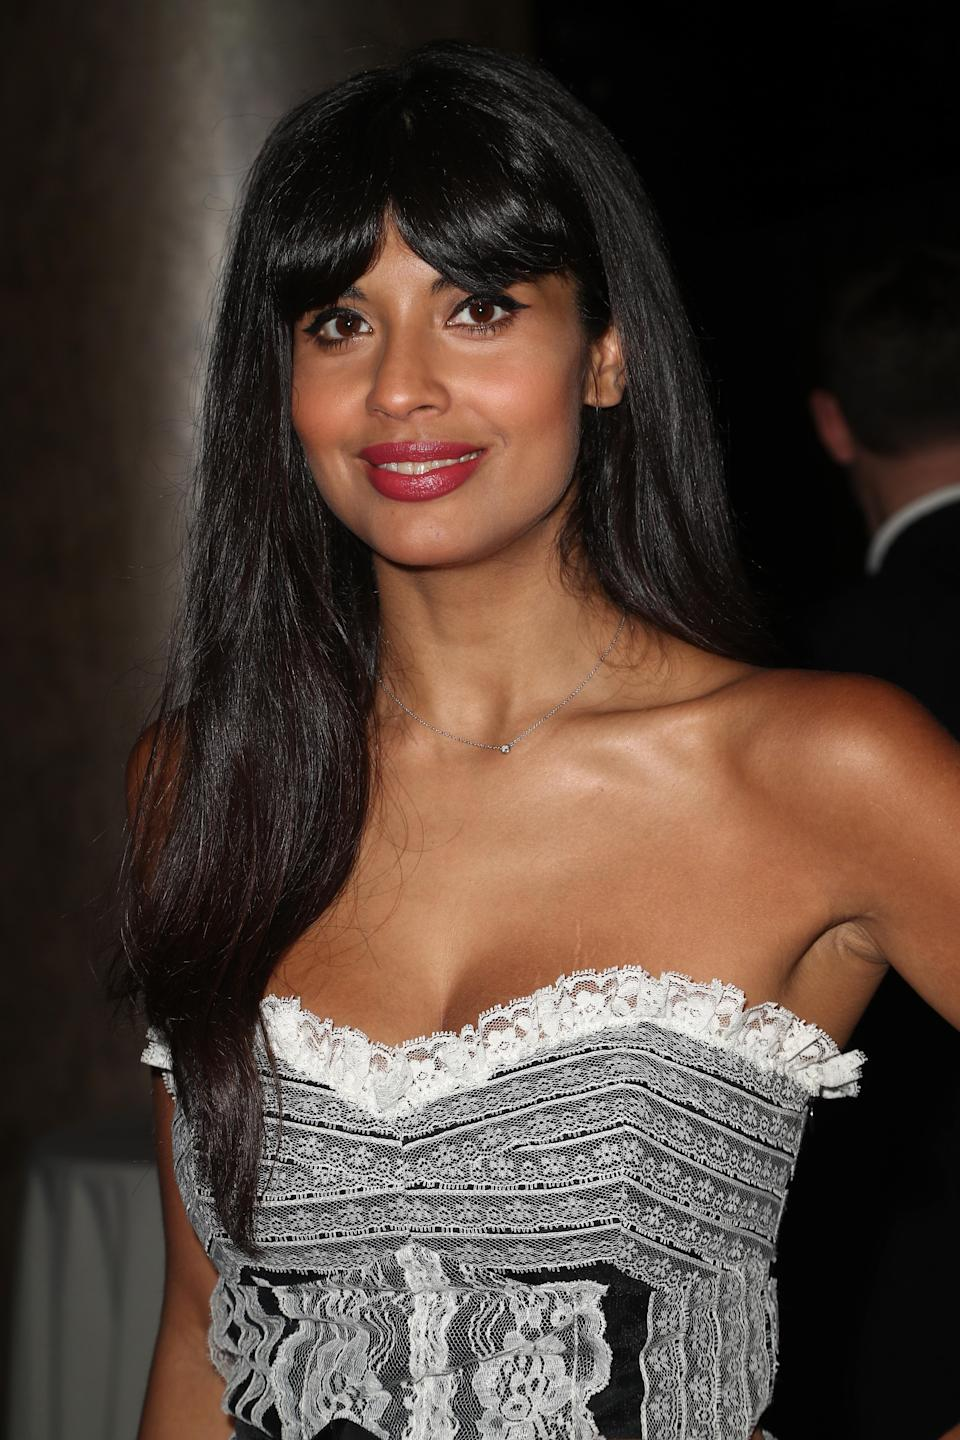 Jameela Jamil didn't appreciate a fellow gym-goer criticizing her body. (Photo: Frederick M. Brown/Getty Images)